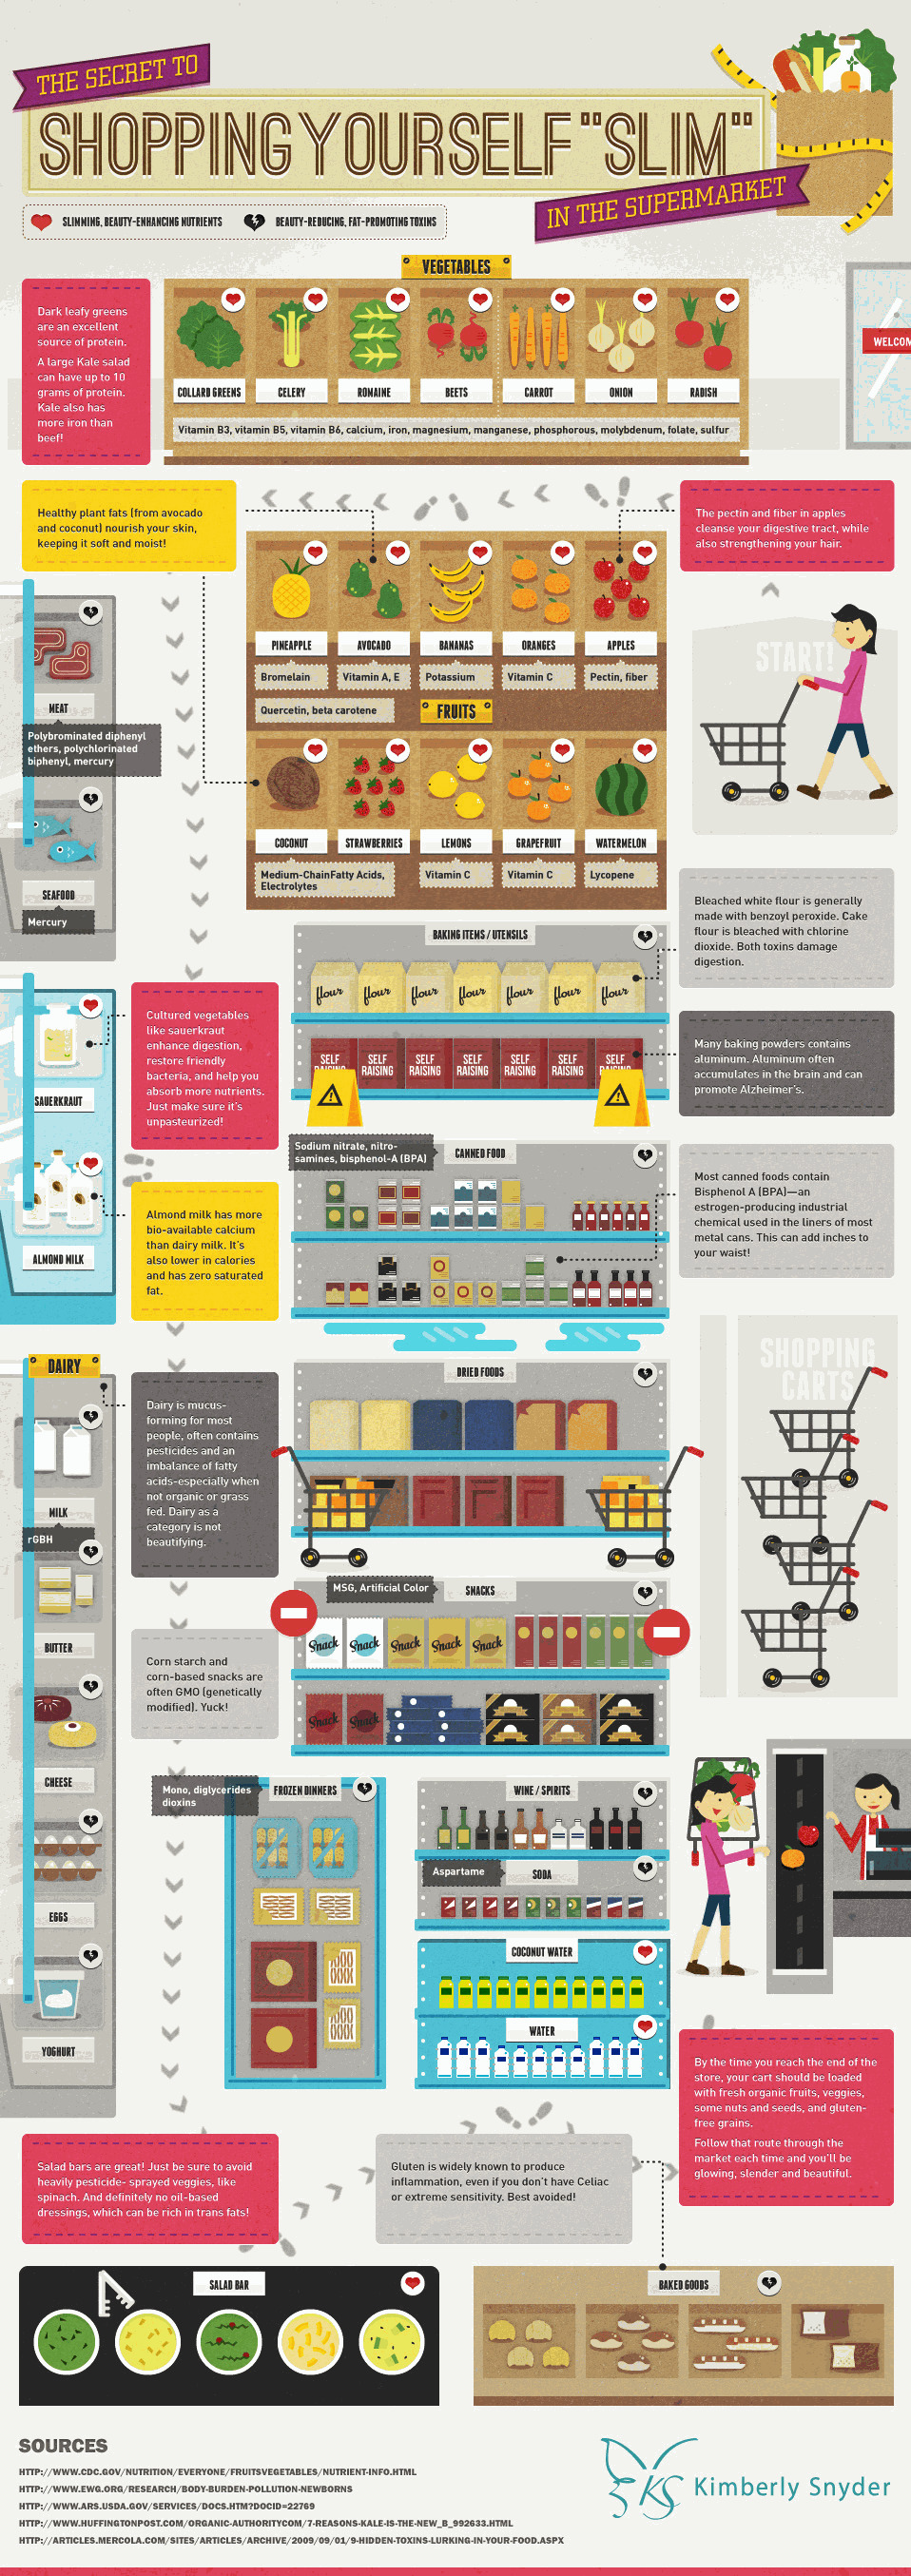 Shopping yourself slim infographic